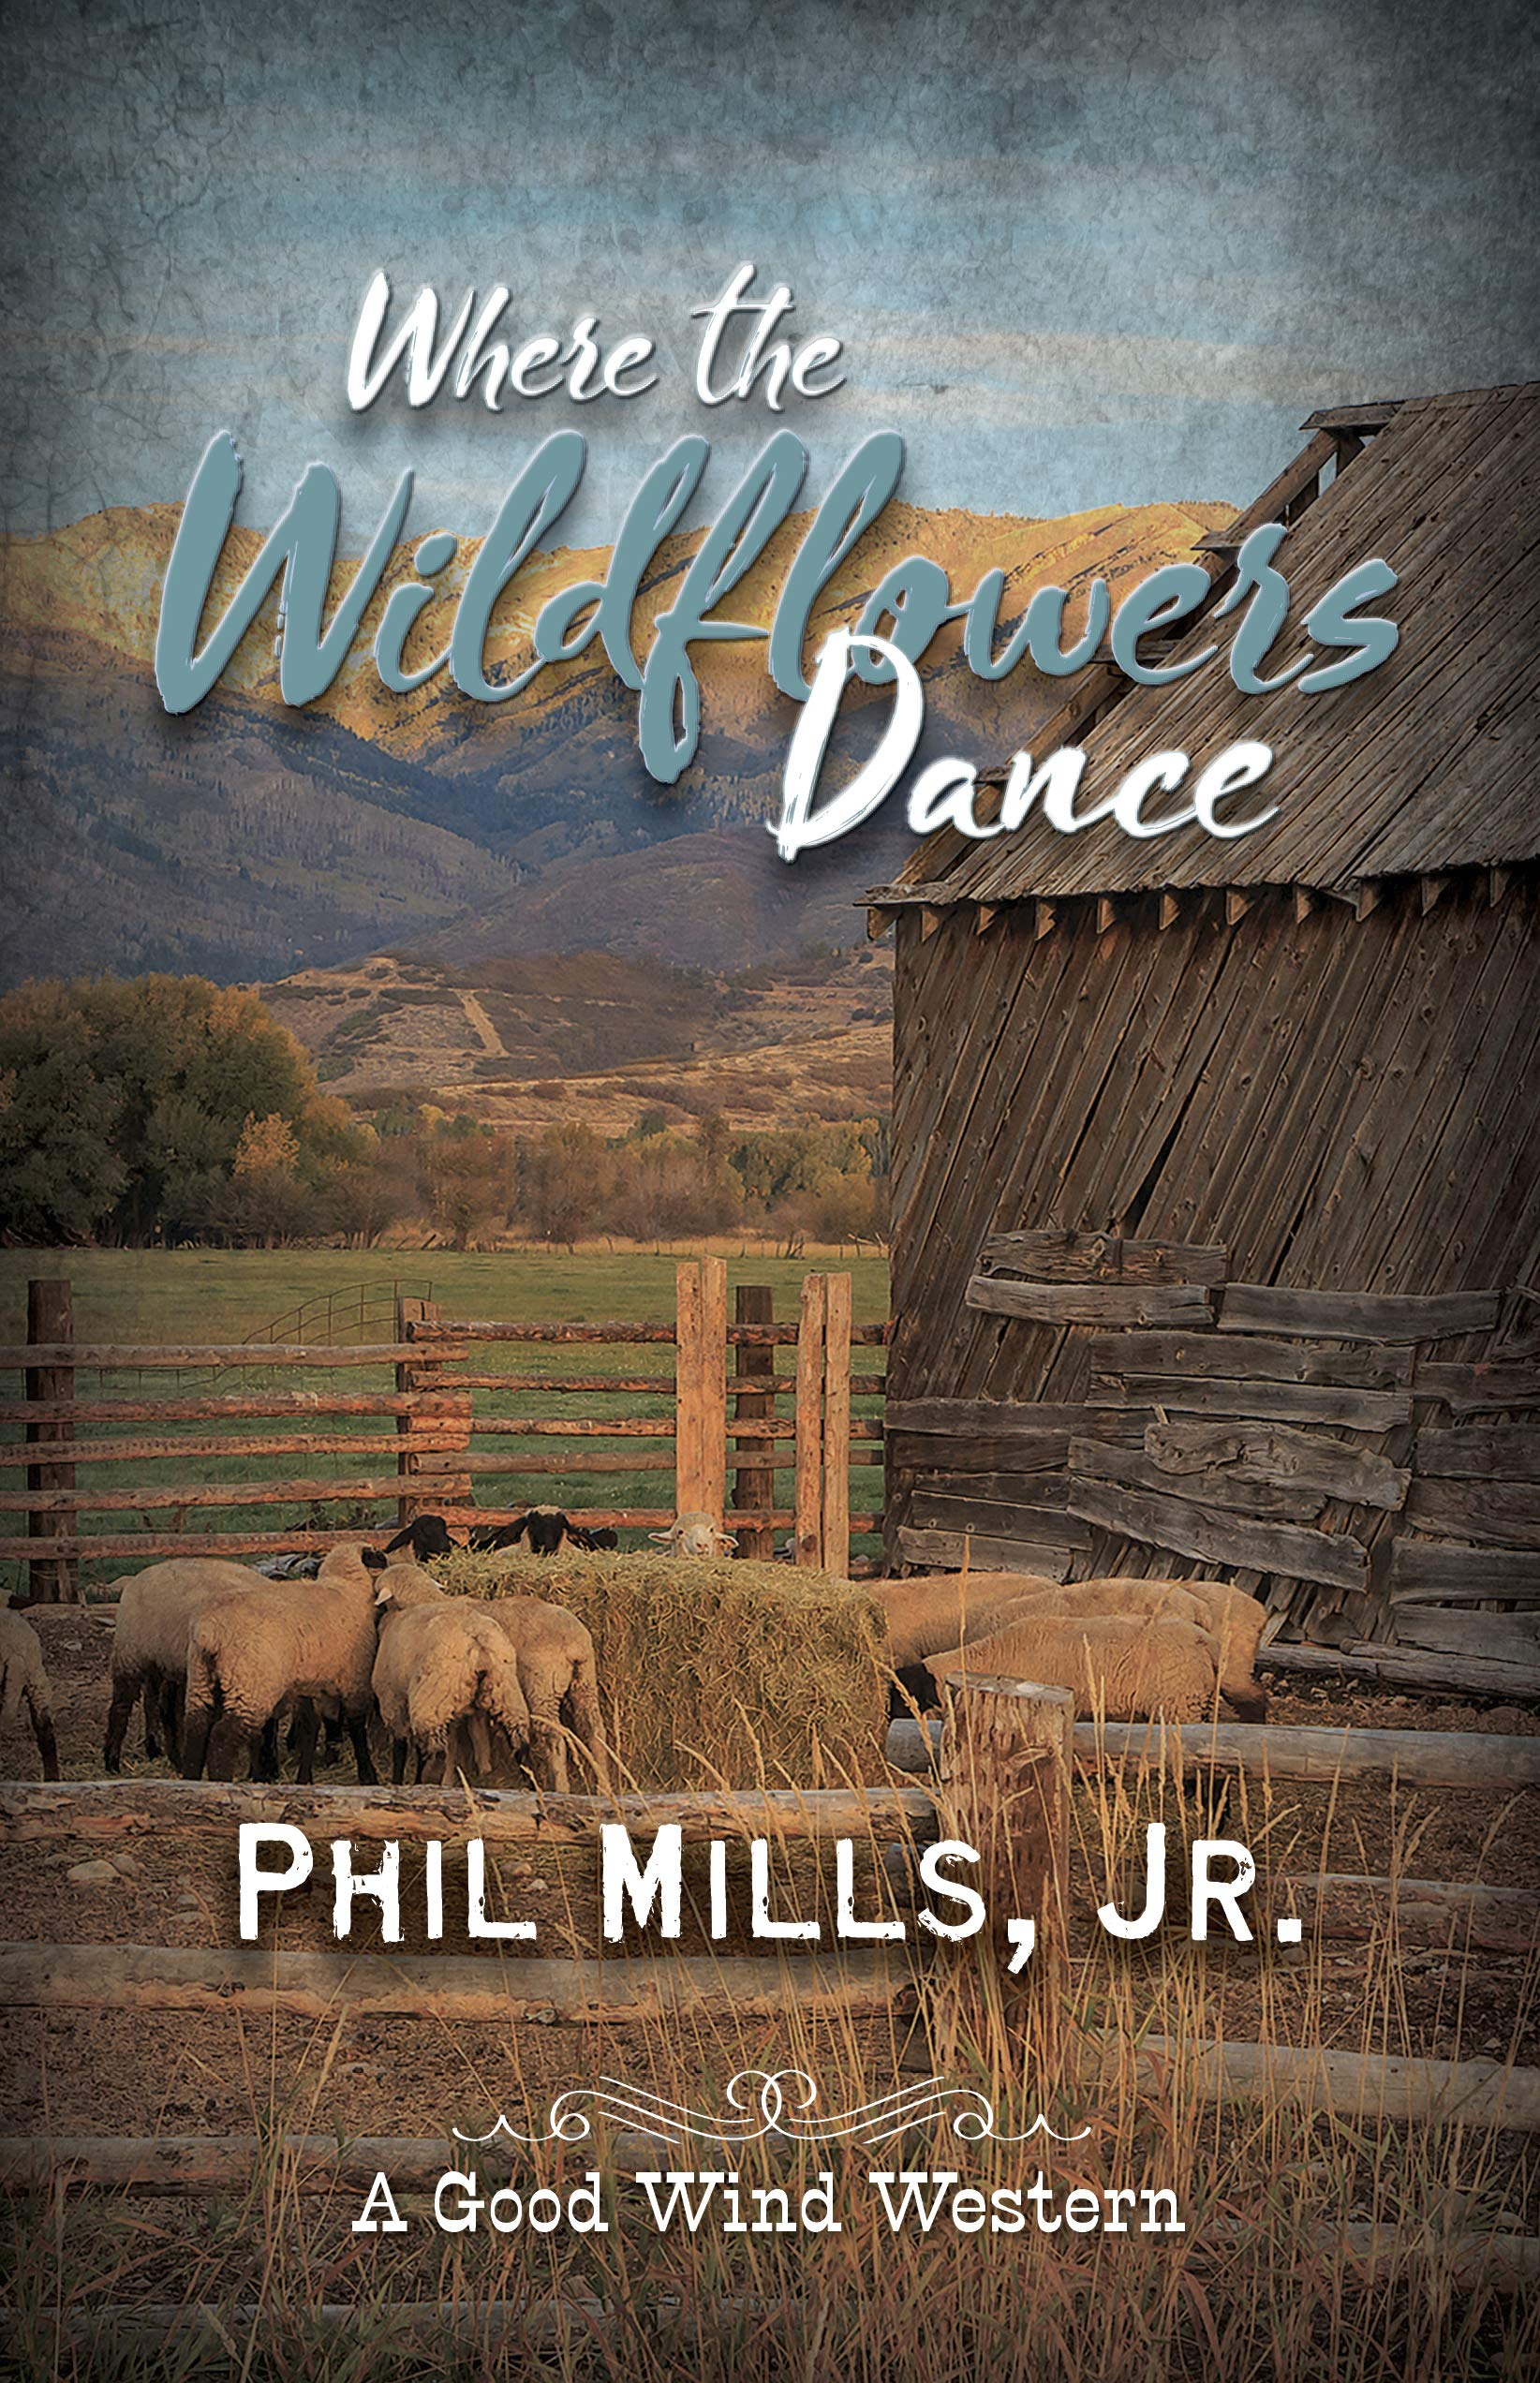 Book Review: Where the Wildflowers Dance by Phil Mills, Jr.